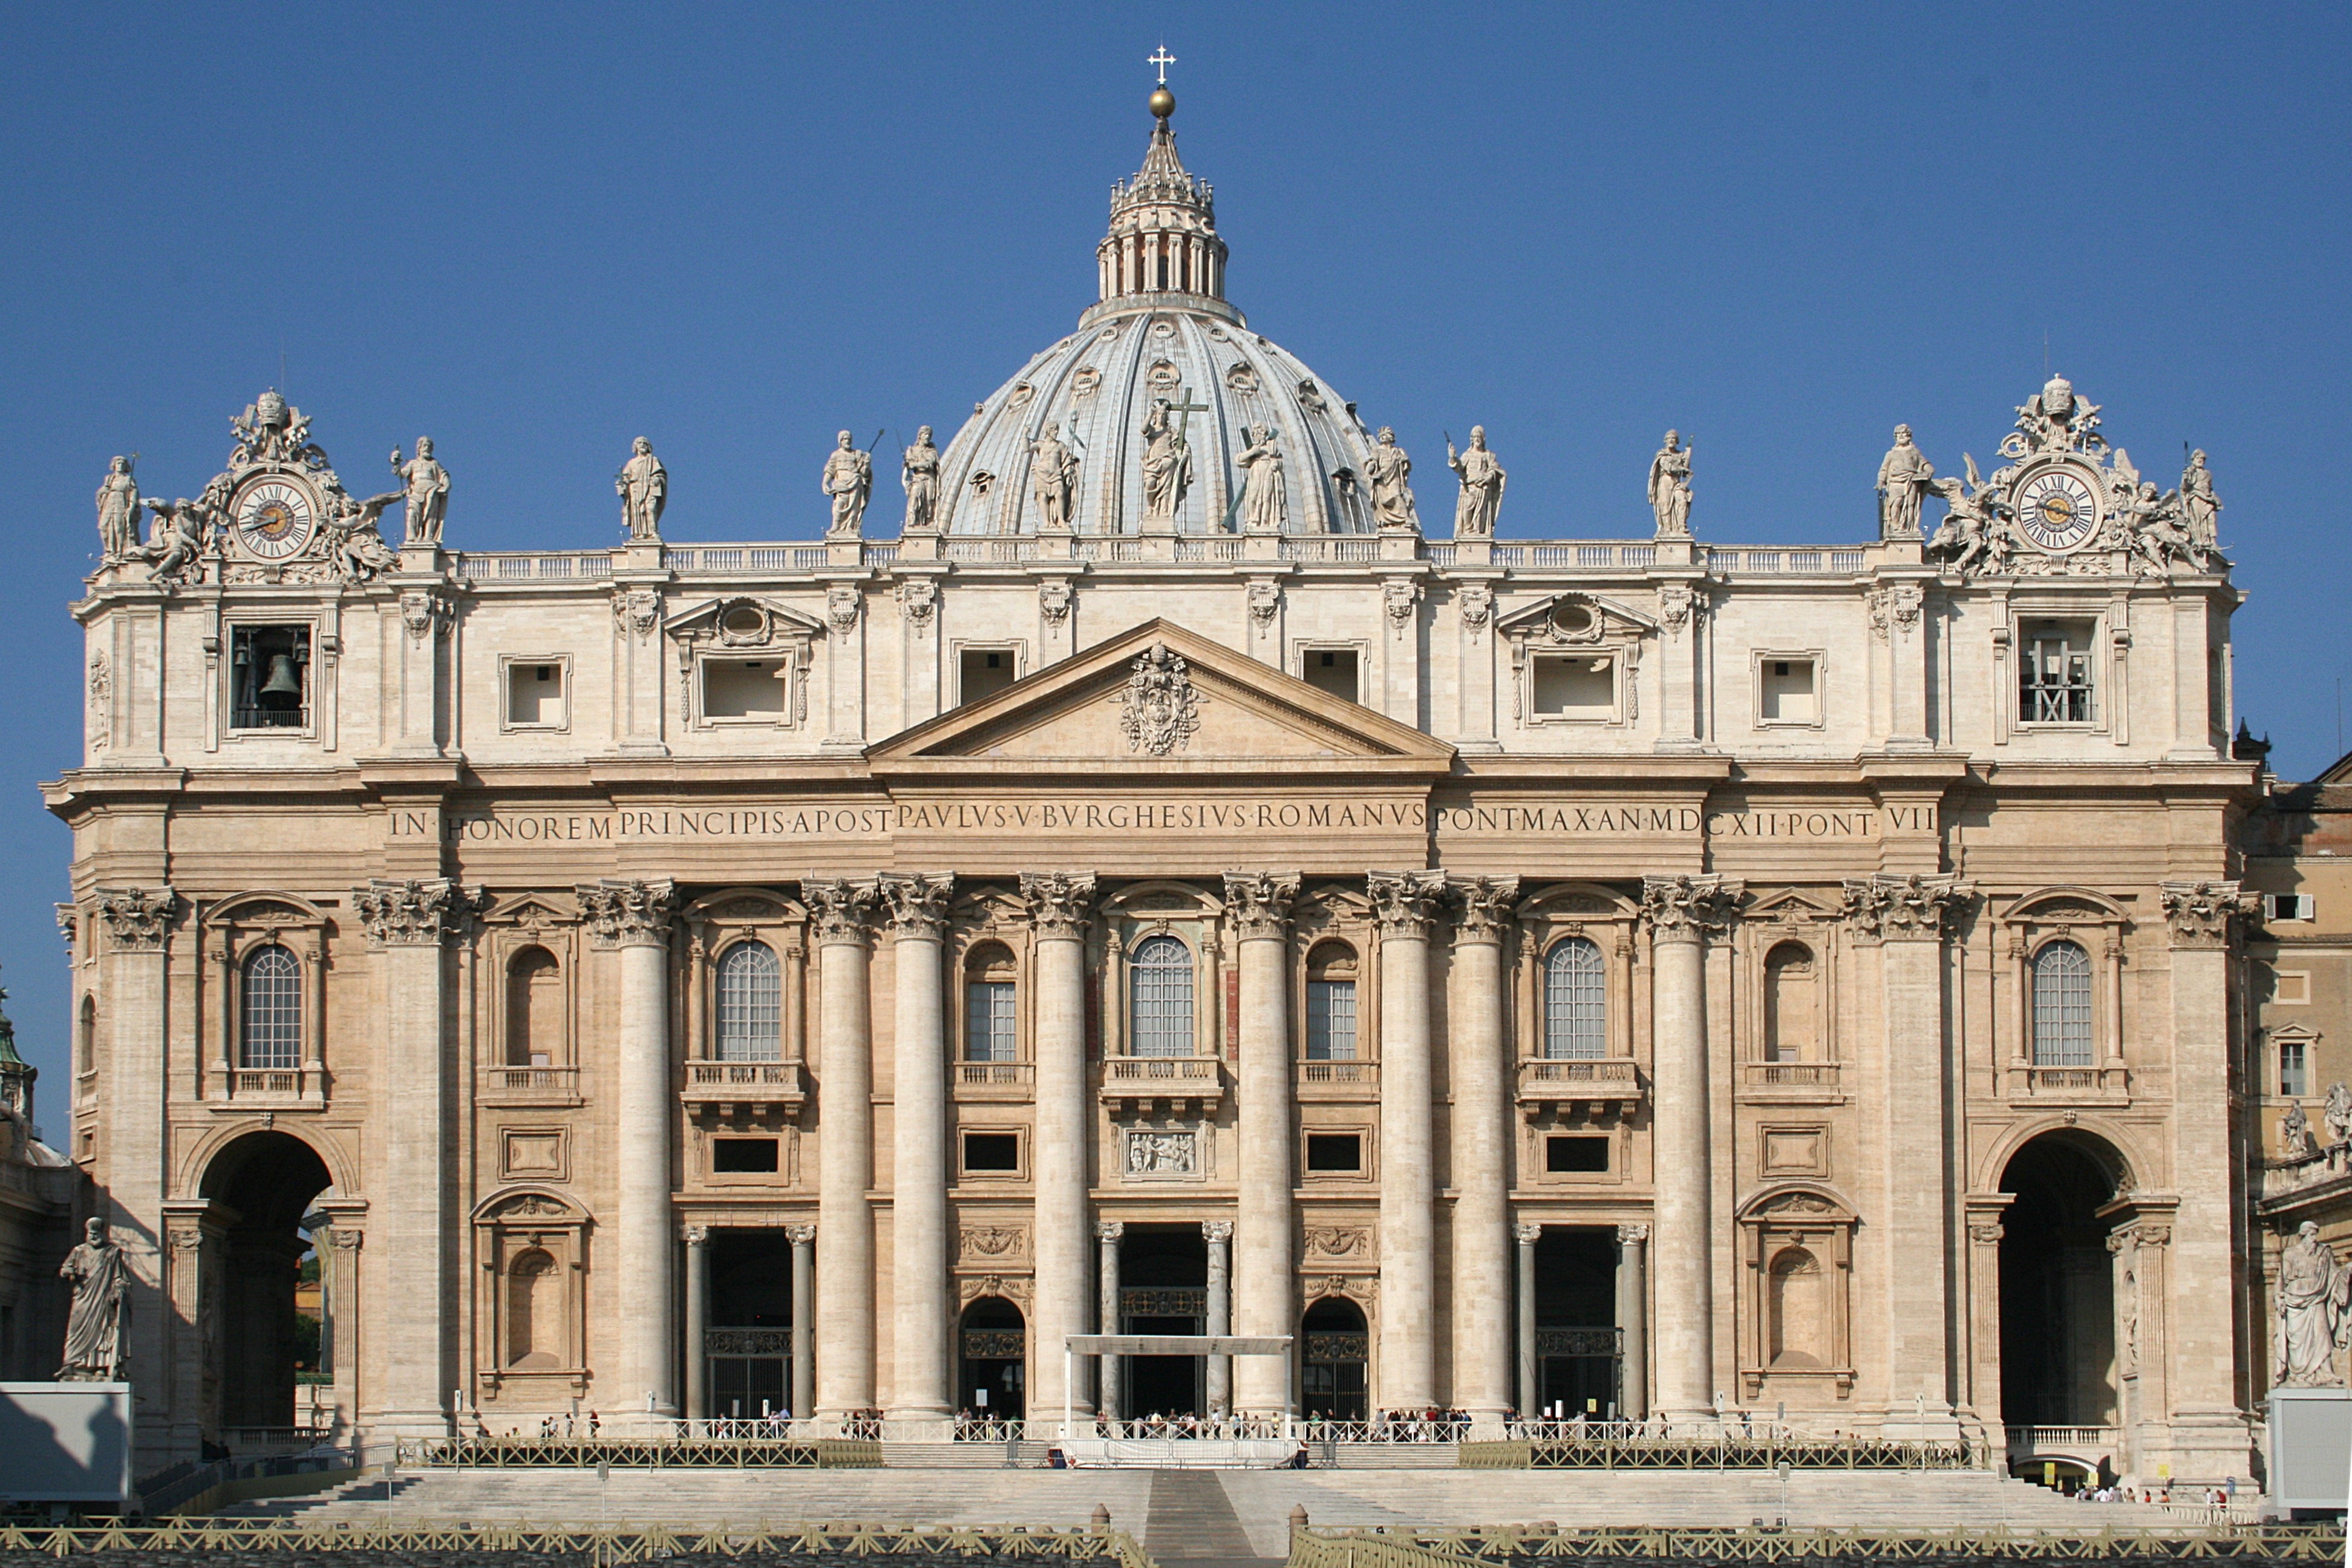 Make room for St. Peter's Basilica in your trip to Rome